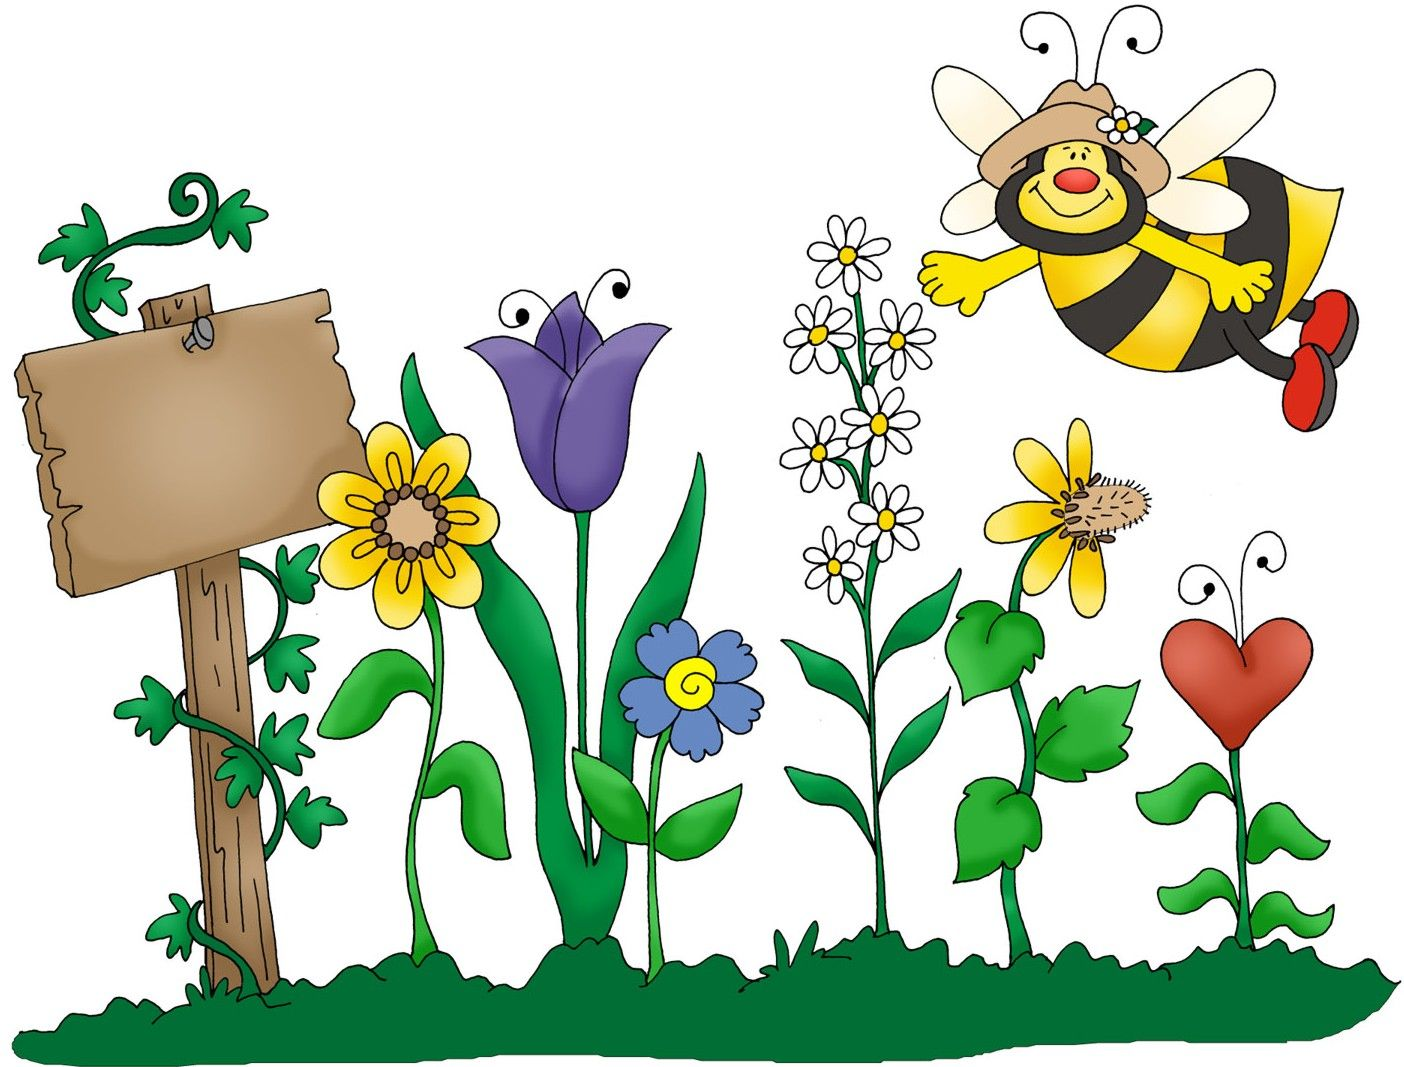 image black and white stock Free images clipartix garden. Gardening clipart